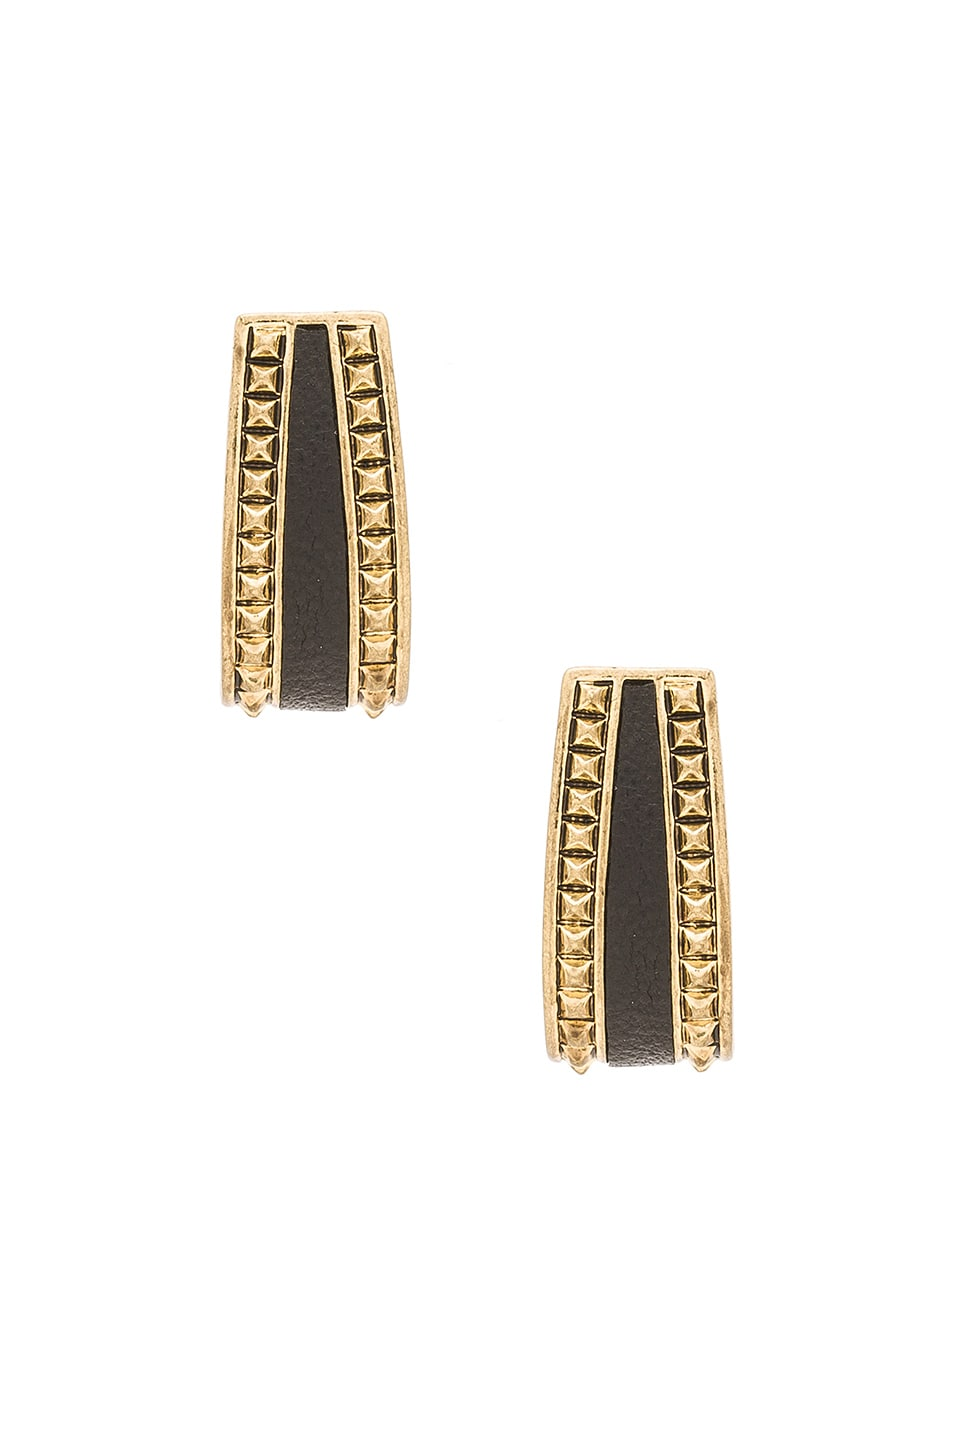 House of Harlow 1960 Helicon Statement Earrings in Gold & Black